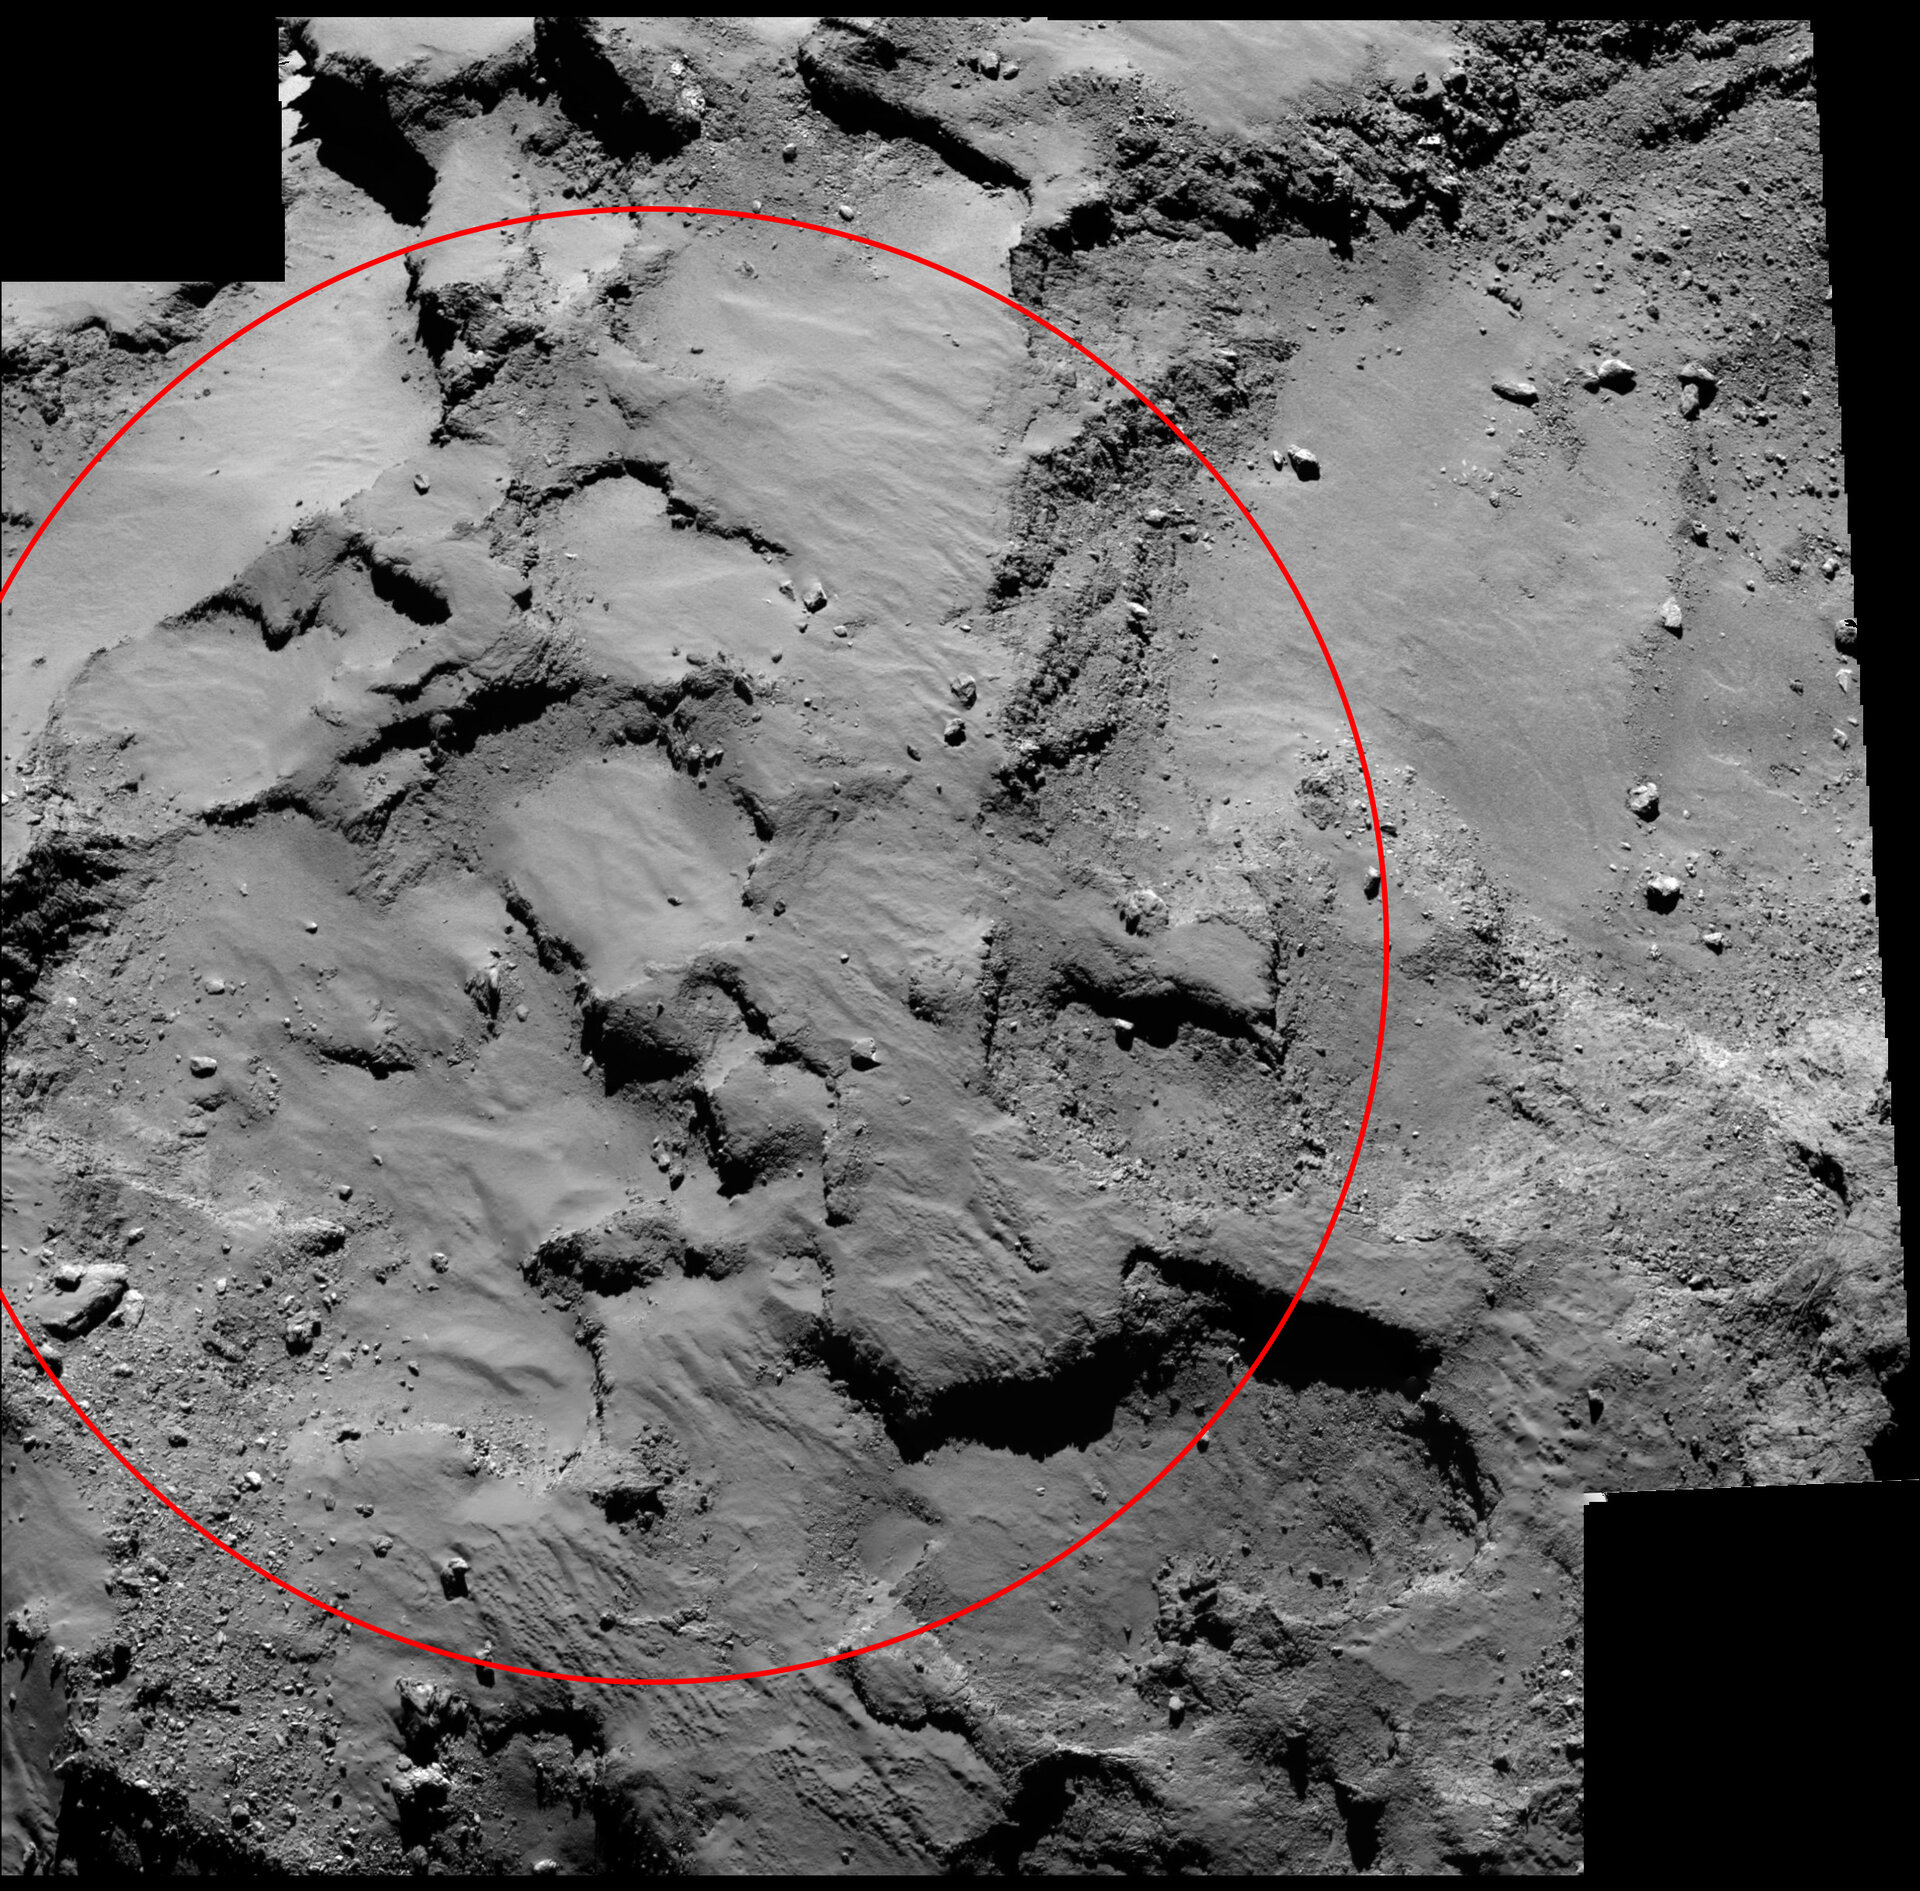 Philae's primary landing site from 30 km